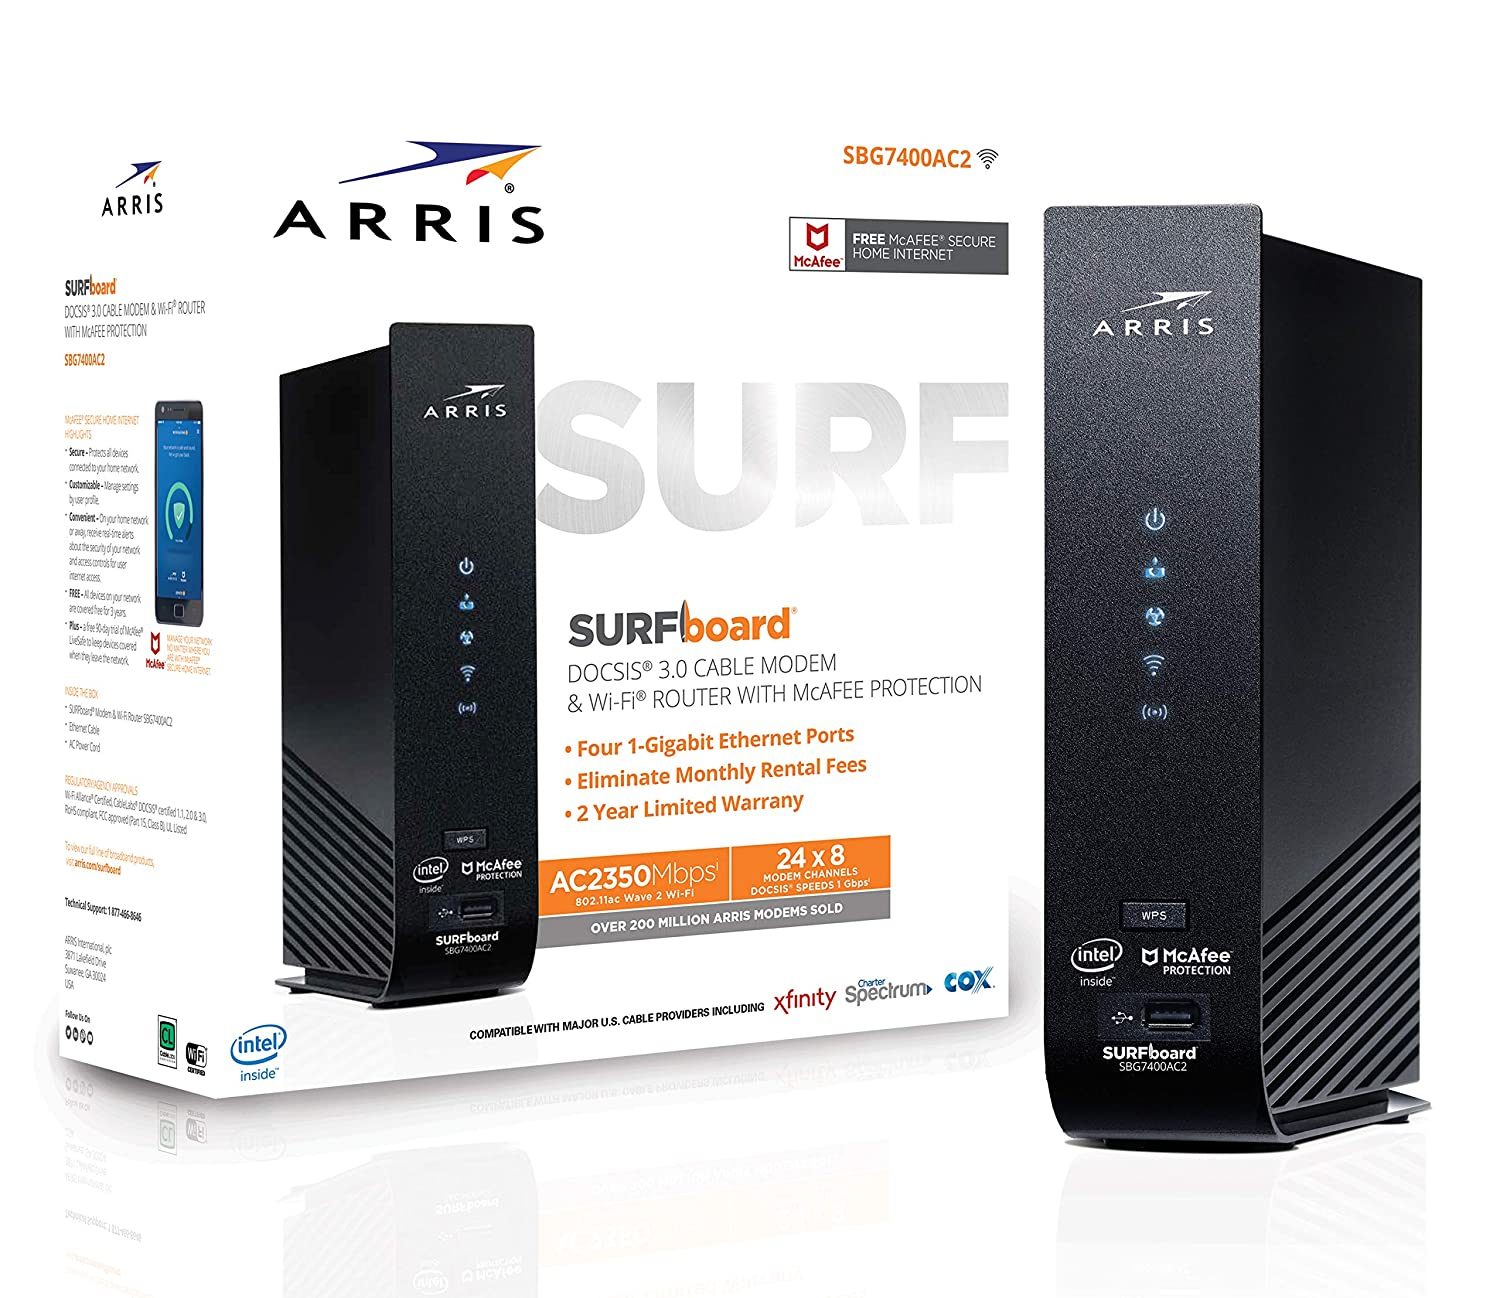 ARRIS SURFboard (24x8) DOCSIS 3 0 Cable Modem Plus AC2350 Dual Band Wi-Fi  Router, approved for Cox, Spectrum, Xfinity & more (SBG7400AC2)